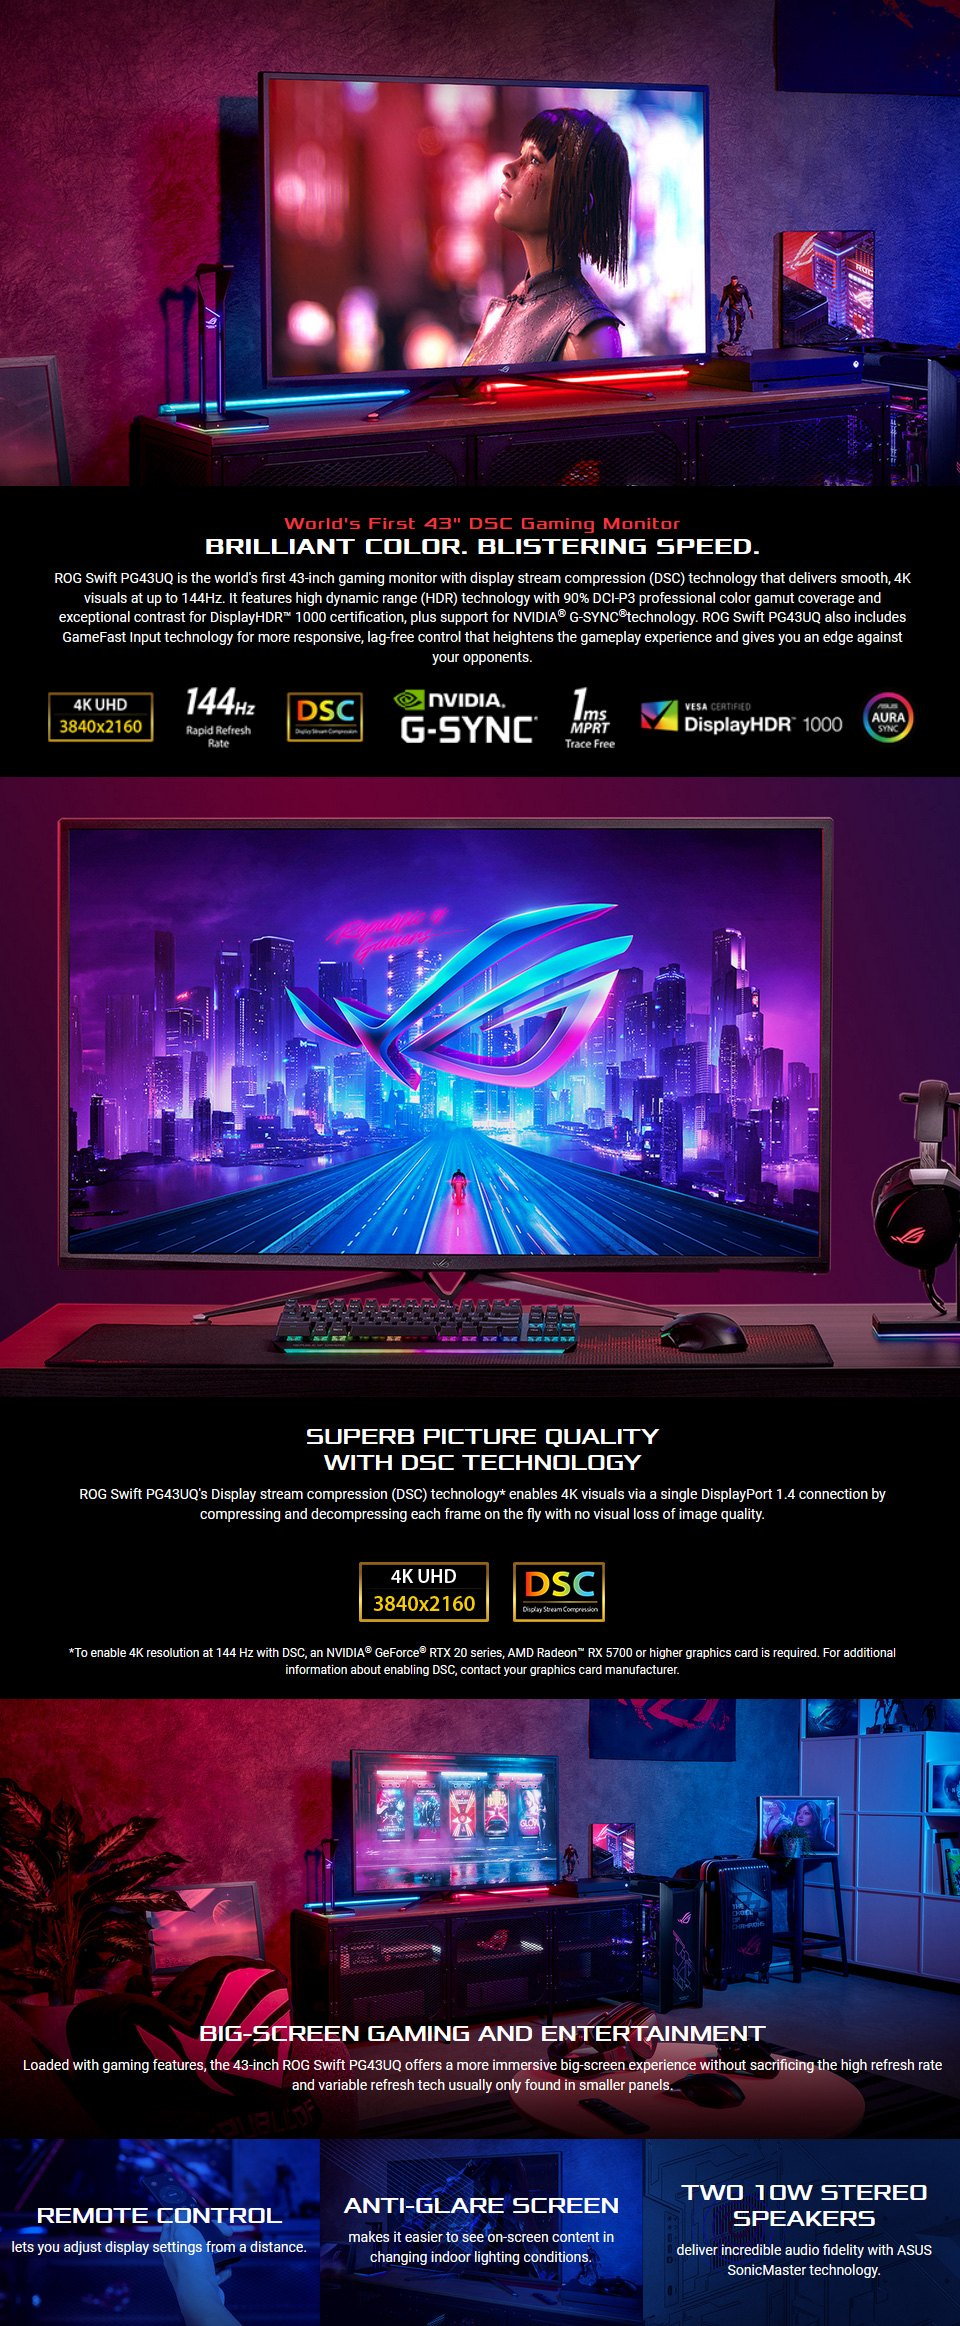 Asus ROG PG43UQ 4K UHD 144Hz G-Sync HDR 43in Monitor features